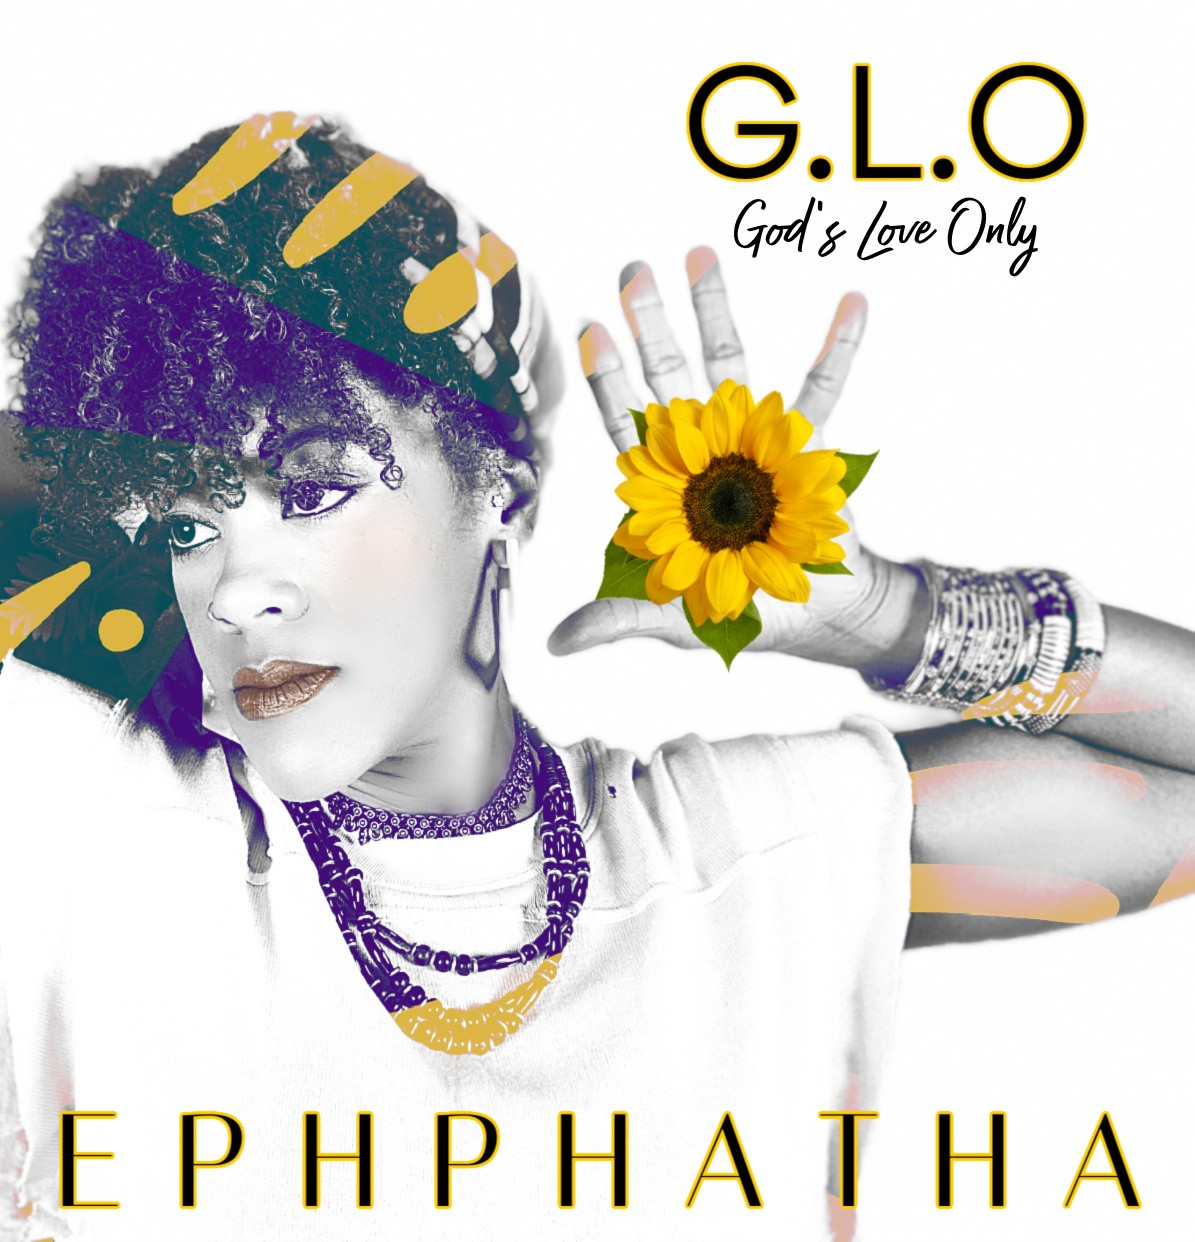 CHRISTIAN RAPPER G.L.O RELEASES NEW SINGLE TO RADIO TODAY